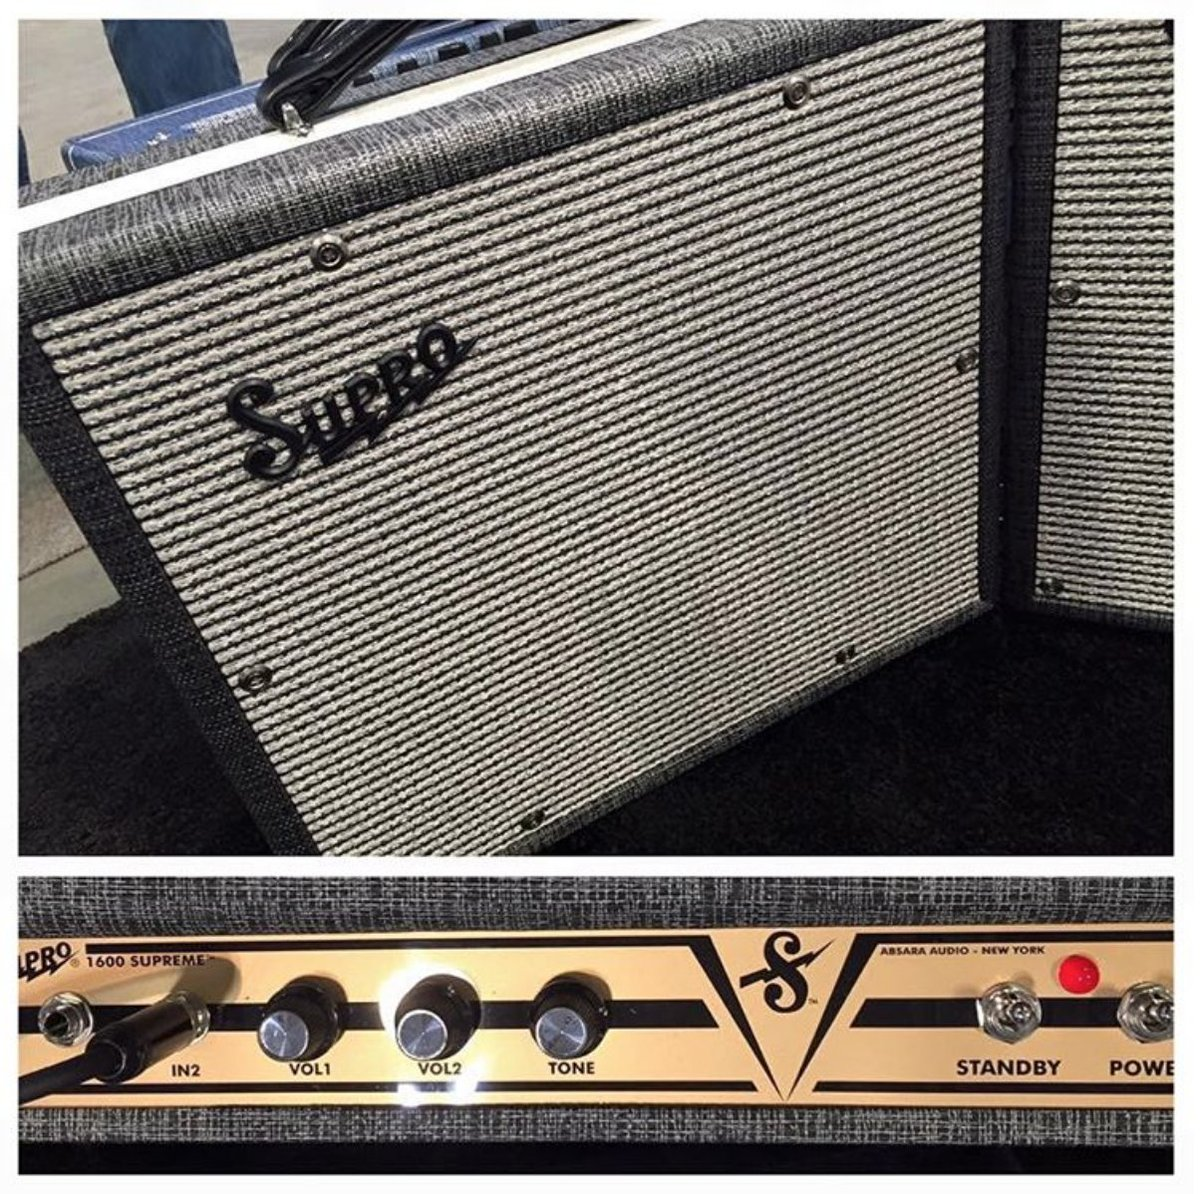 One of the latest cool amps from @SuproUSA the ⚡️ Supreme ⚡️ @GuitarWorldNews @mhall55nine @rwyjunior @ProGuitarShop https://t.co/qULVbAn8b9